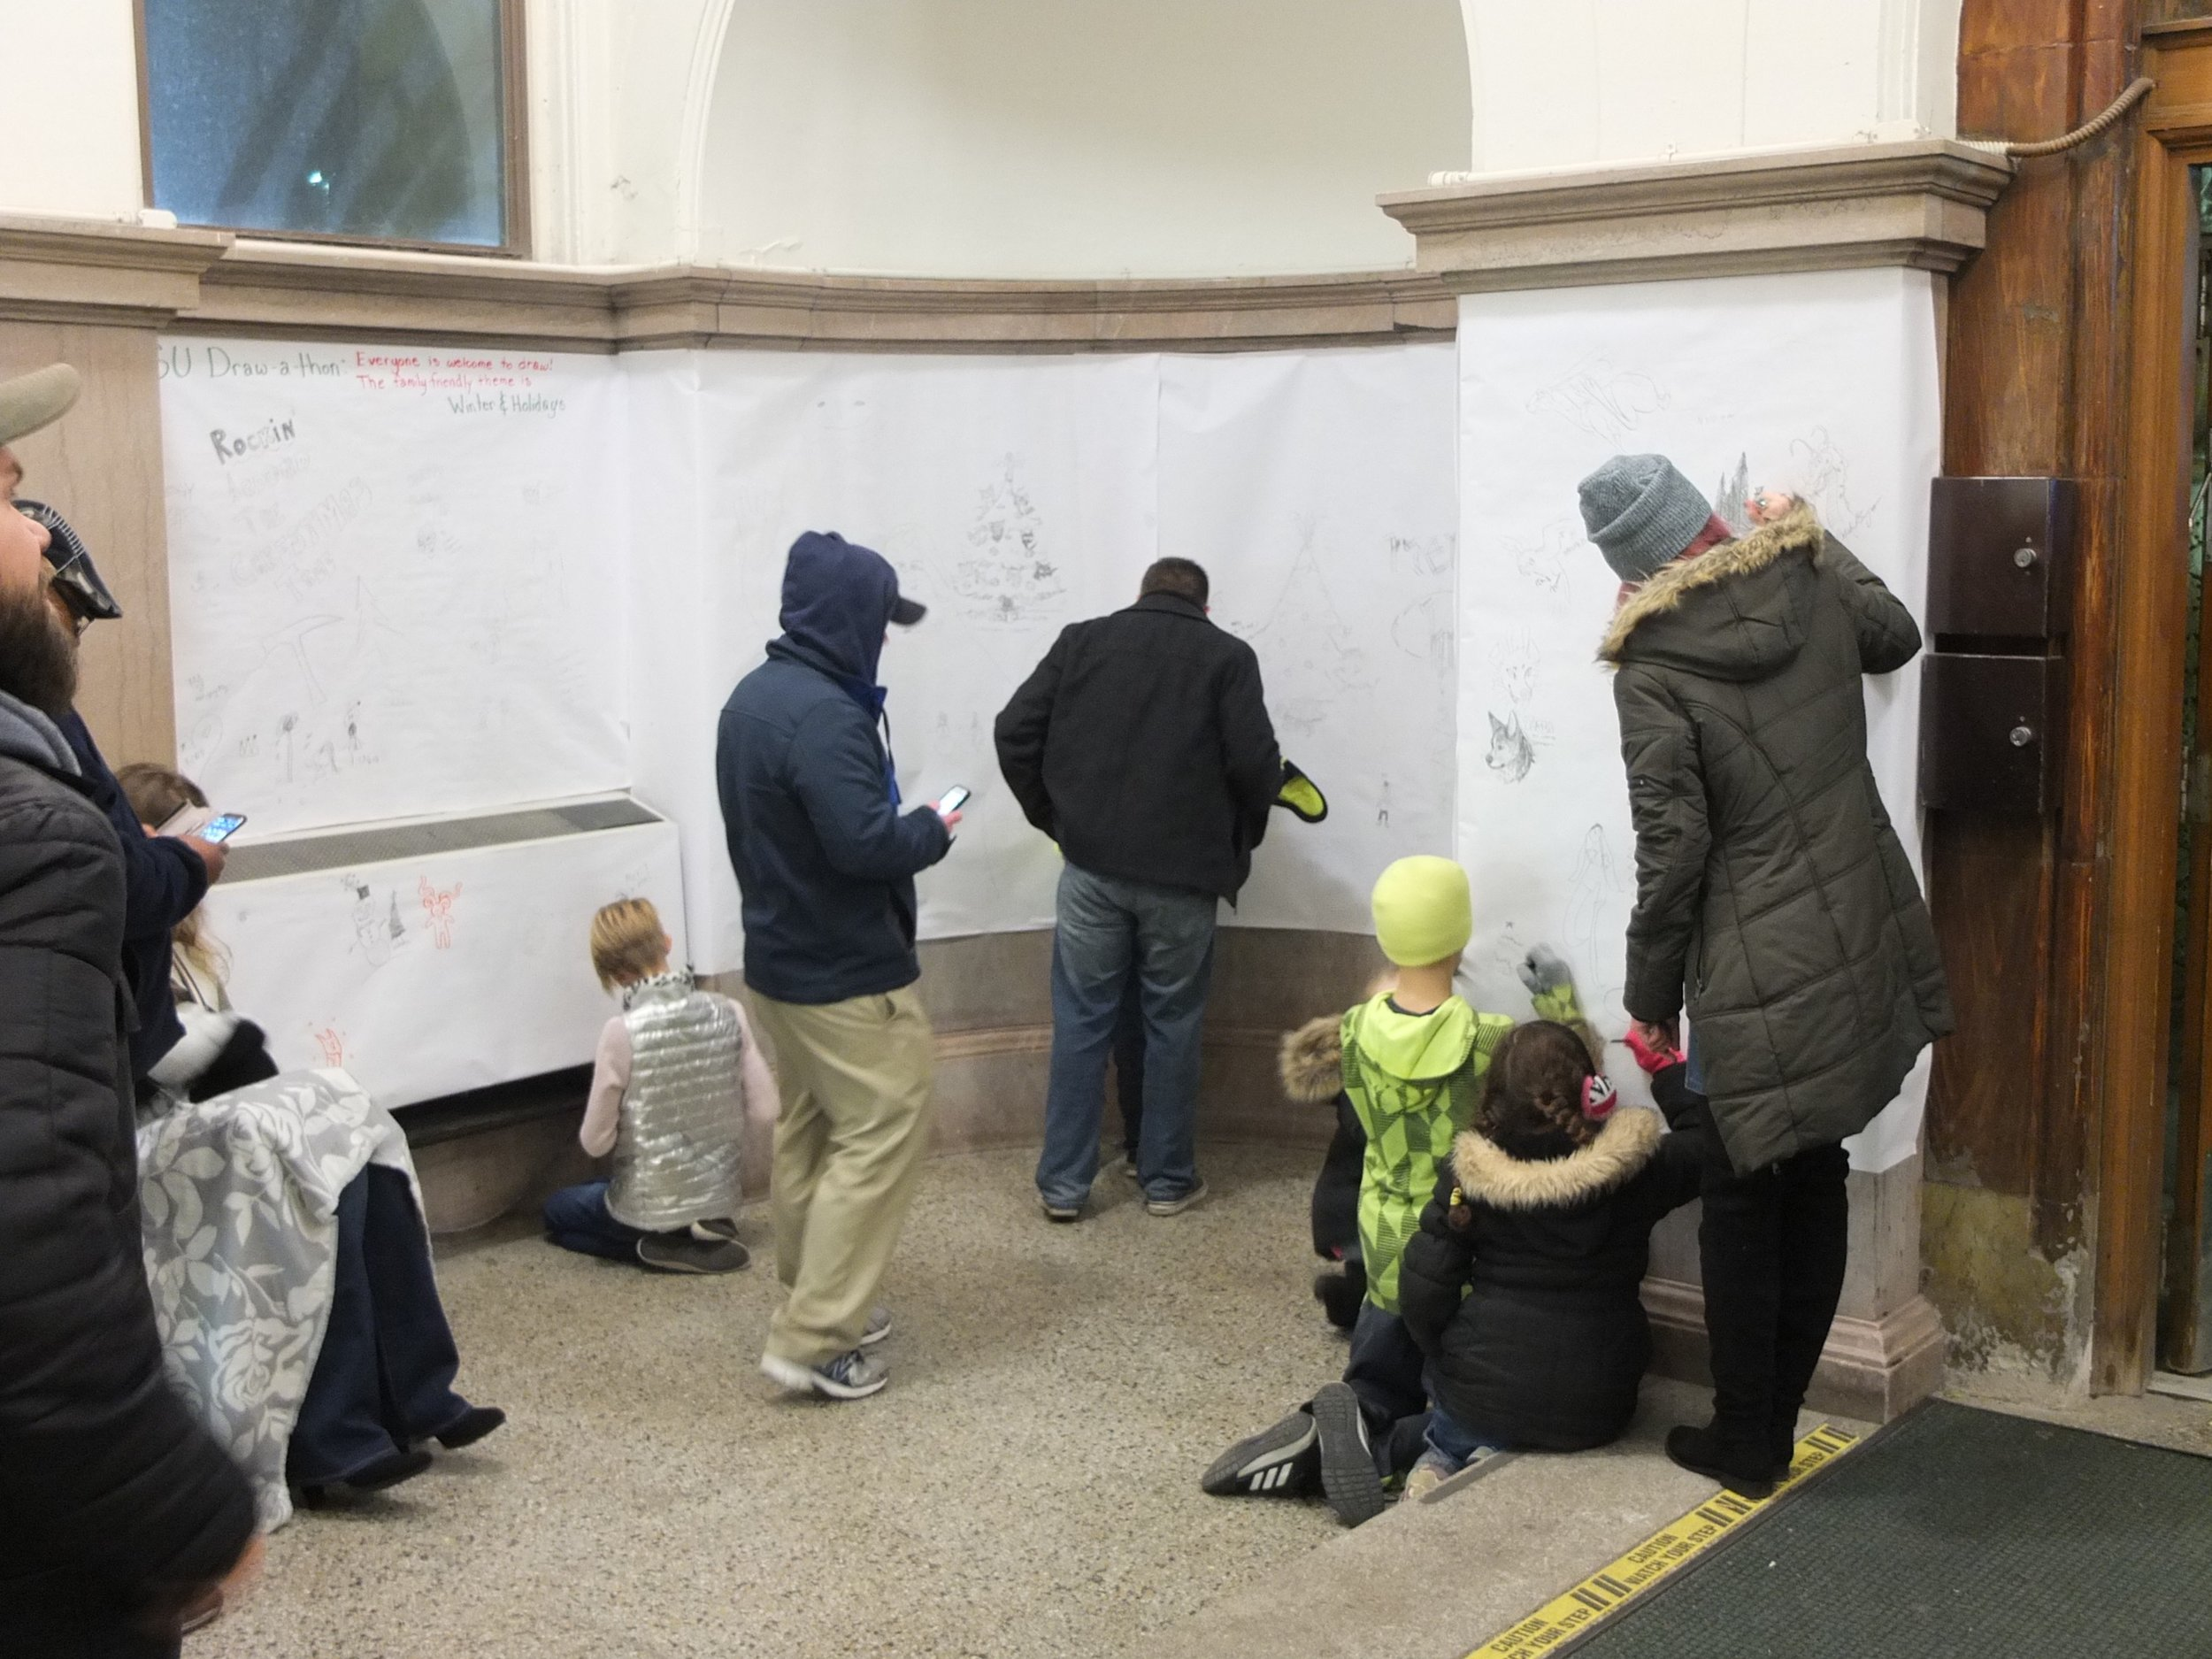 "In 2017, with the help of my drawing students, we developed and hosted the WSU Draw-A-thon as part of the 45th Annual Noel Night Celebration in Midtown Detroit. The students came up with the theme of ""Winter & Holidays."" Hundreds of people from the community came out and participated by drawing on the walls of the historic Old Main building on WSU's campus."